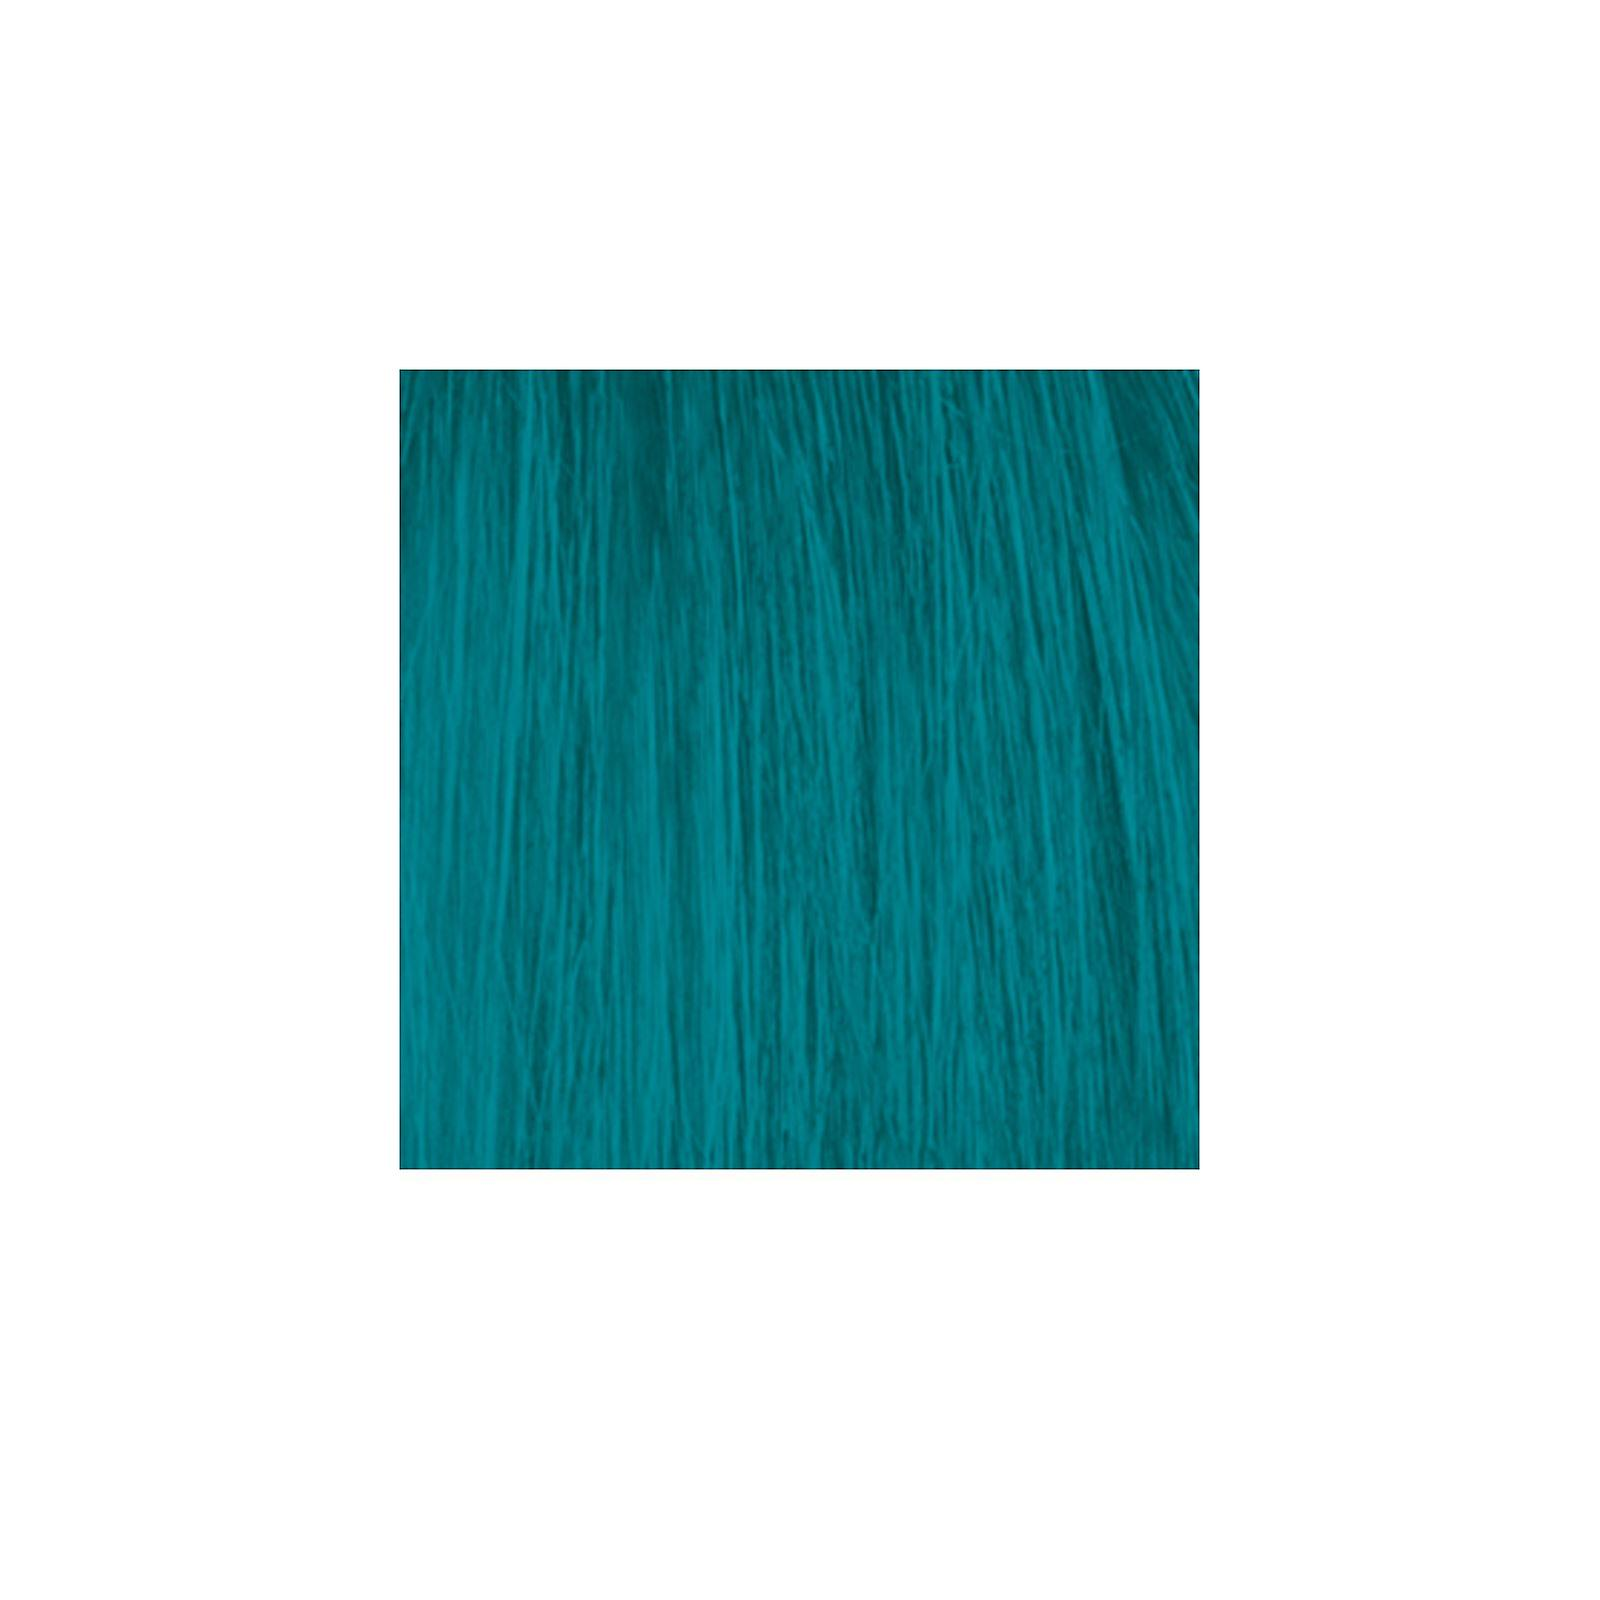 Hair Dye Semi Permanent by Stargazer - UV TURQUOISE With Free Gloves